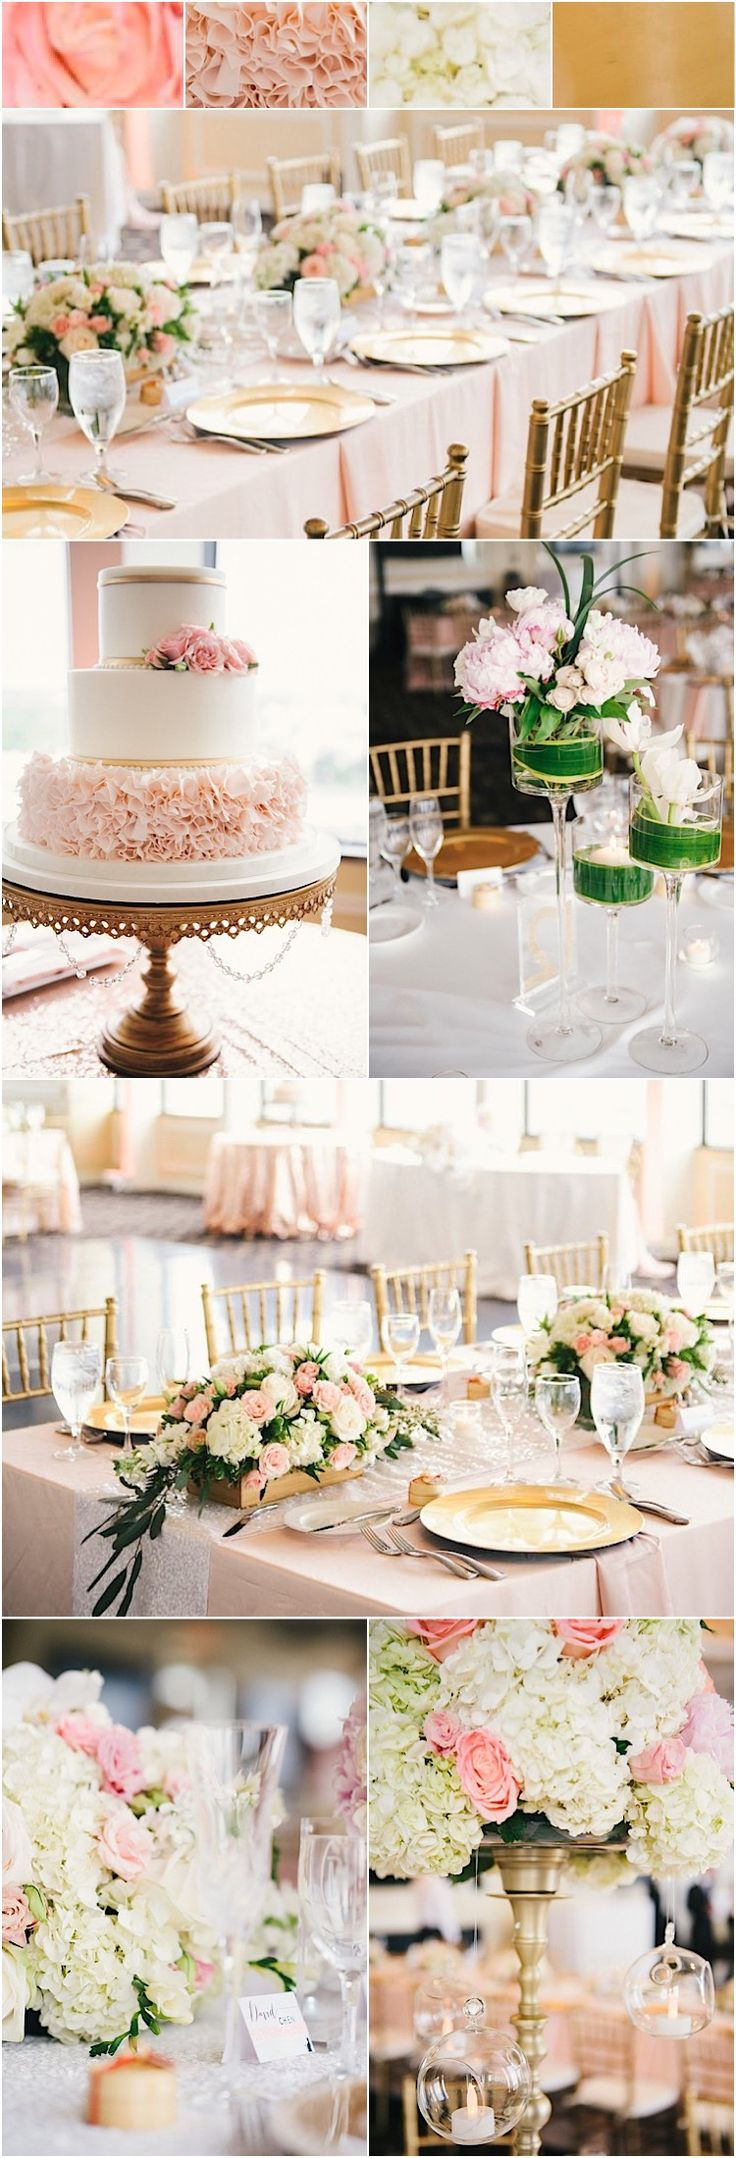 The 61 best Wedding Color Palette Ideas images on Pinterest ...